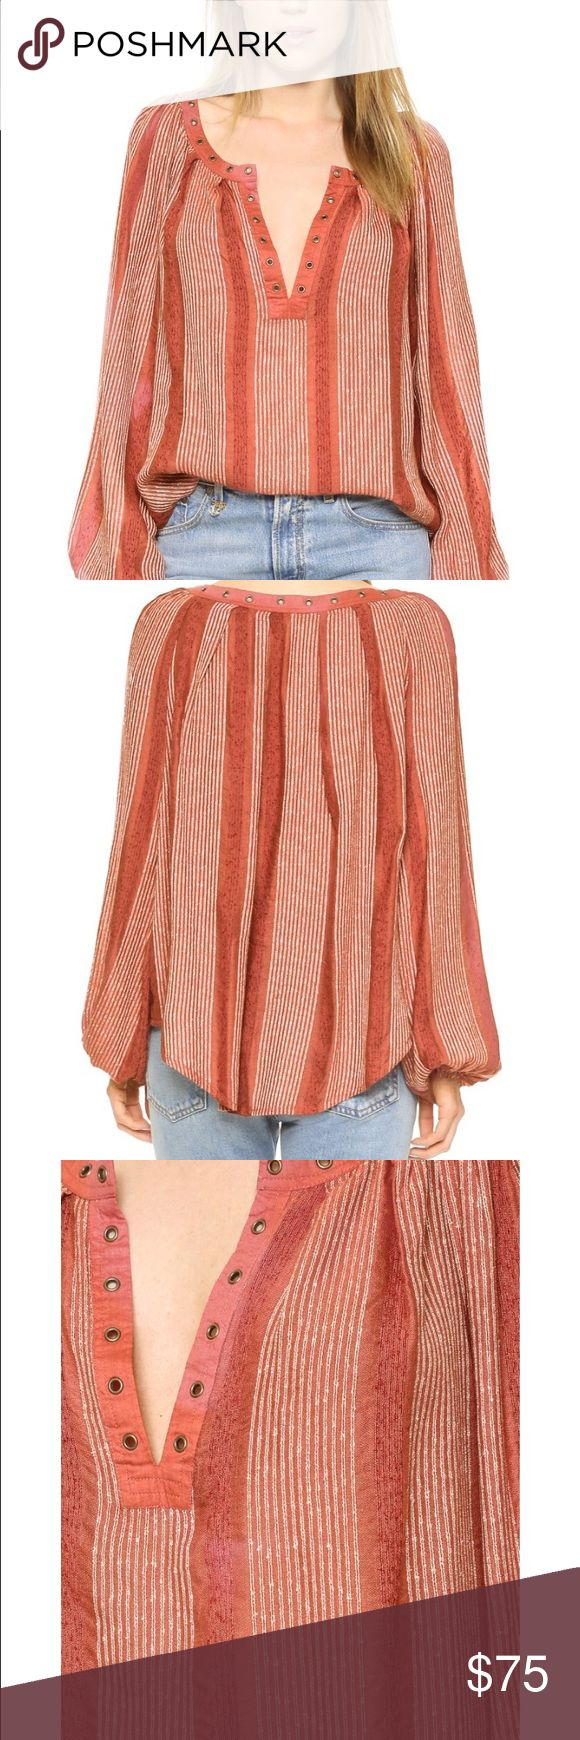 NWT Free People bohemian blouse Size xs Free People Tops Blouses